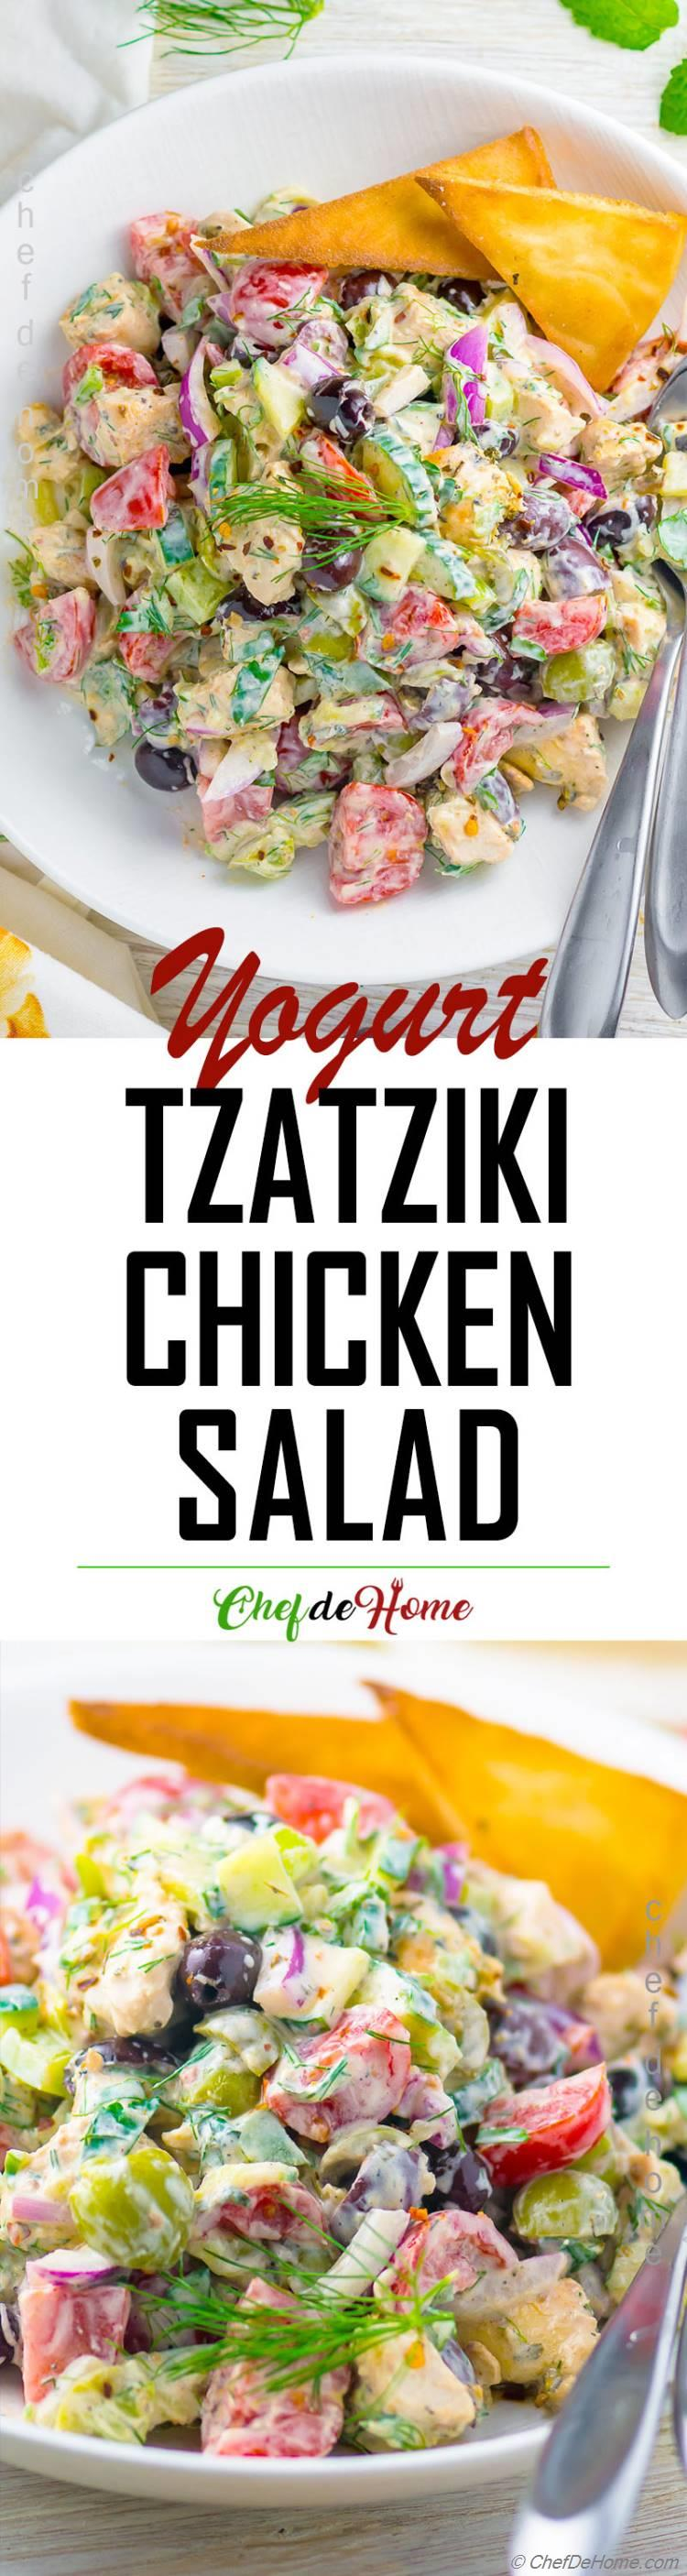 Tzatziki Chicken Salad with Yogurt Dressing Gluten free Cucumber Chicken Yogurt Salad